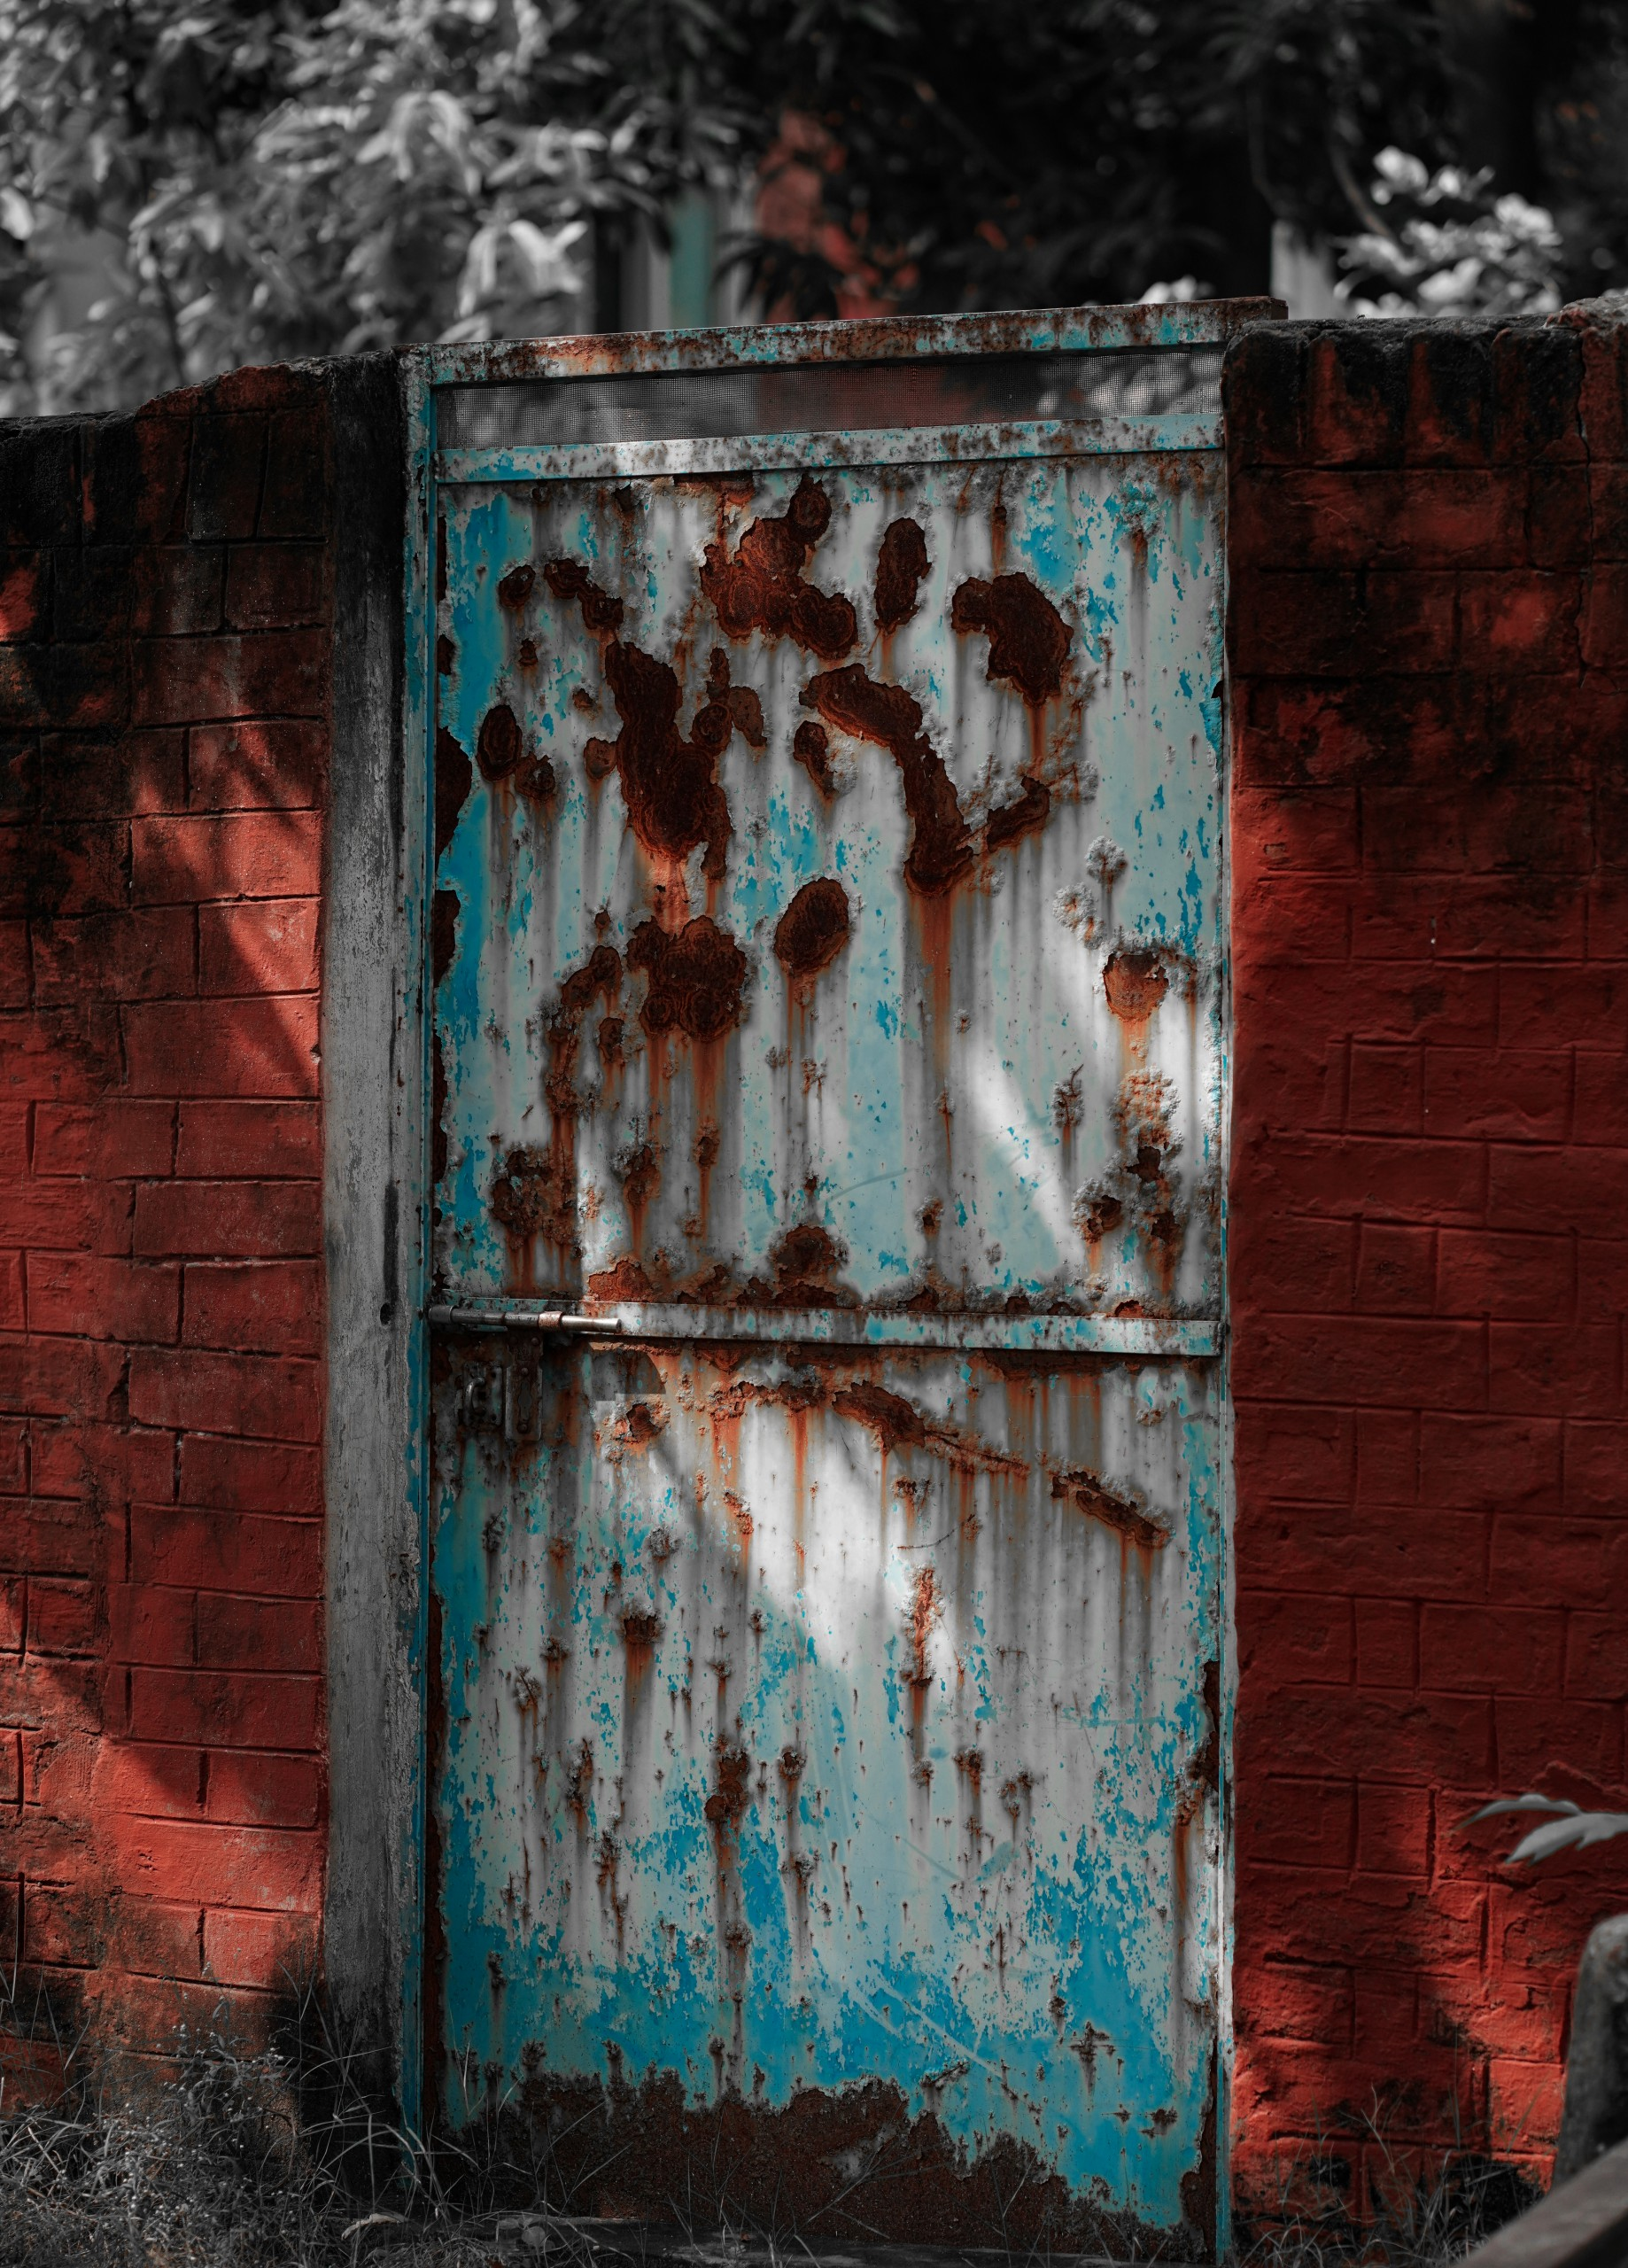 A Rusted Old Door